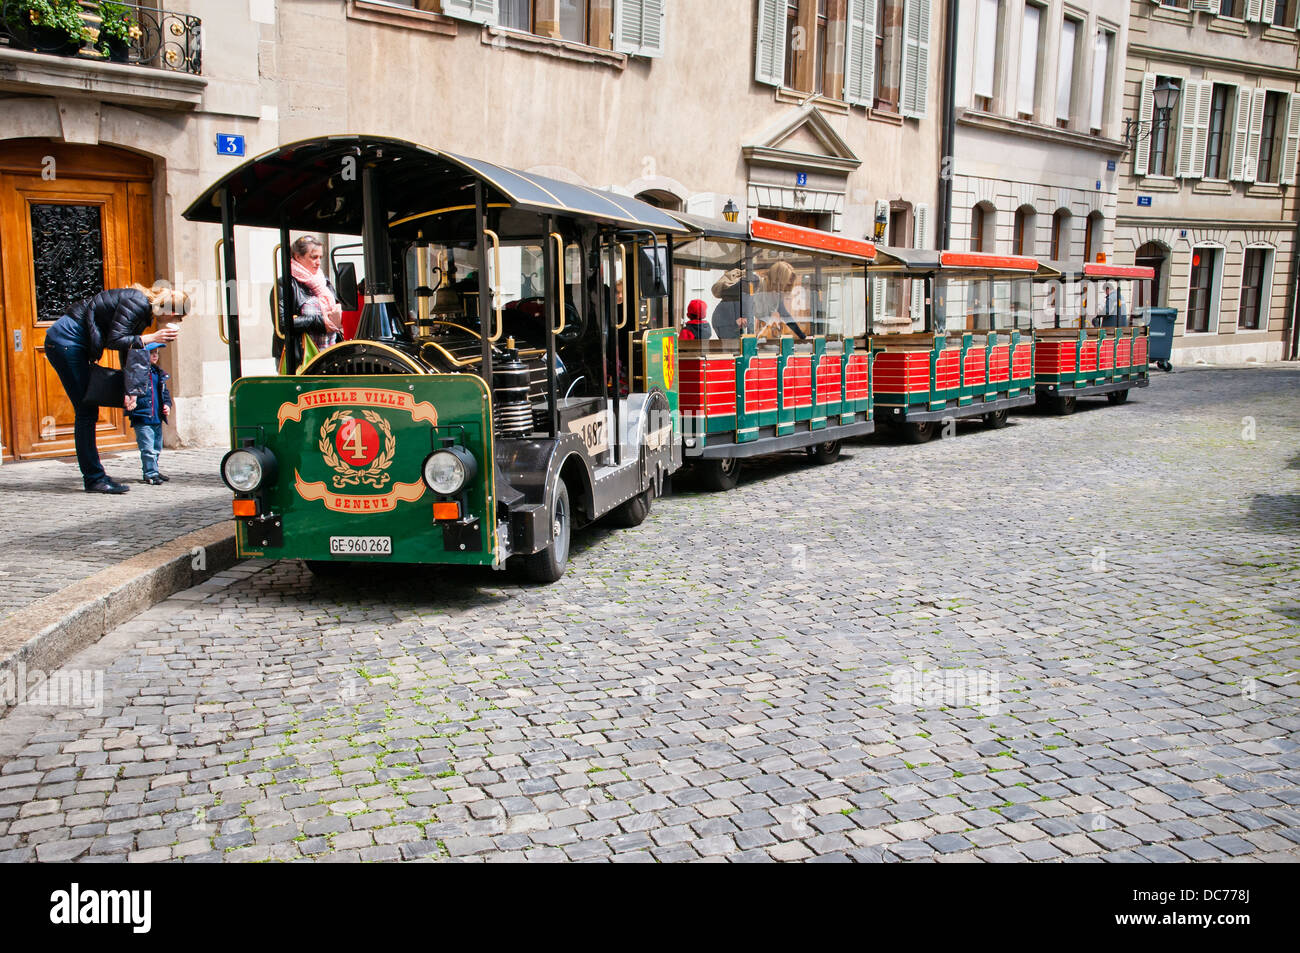 Mother and son preparing to board mini train plying the Old Town, Geneva, Switzerland, Europe. - Stock Image